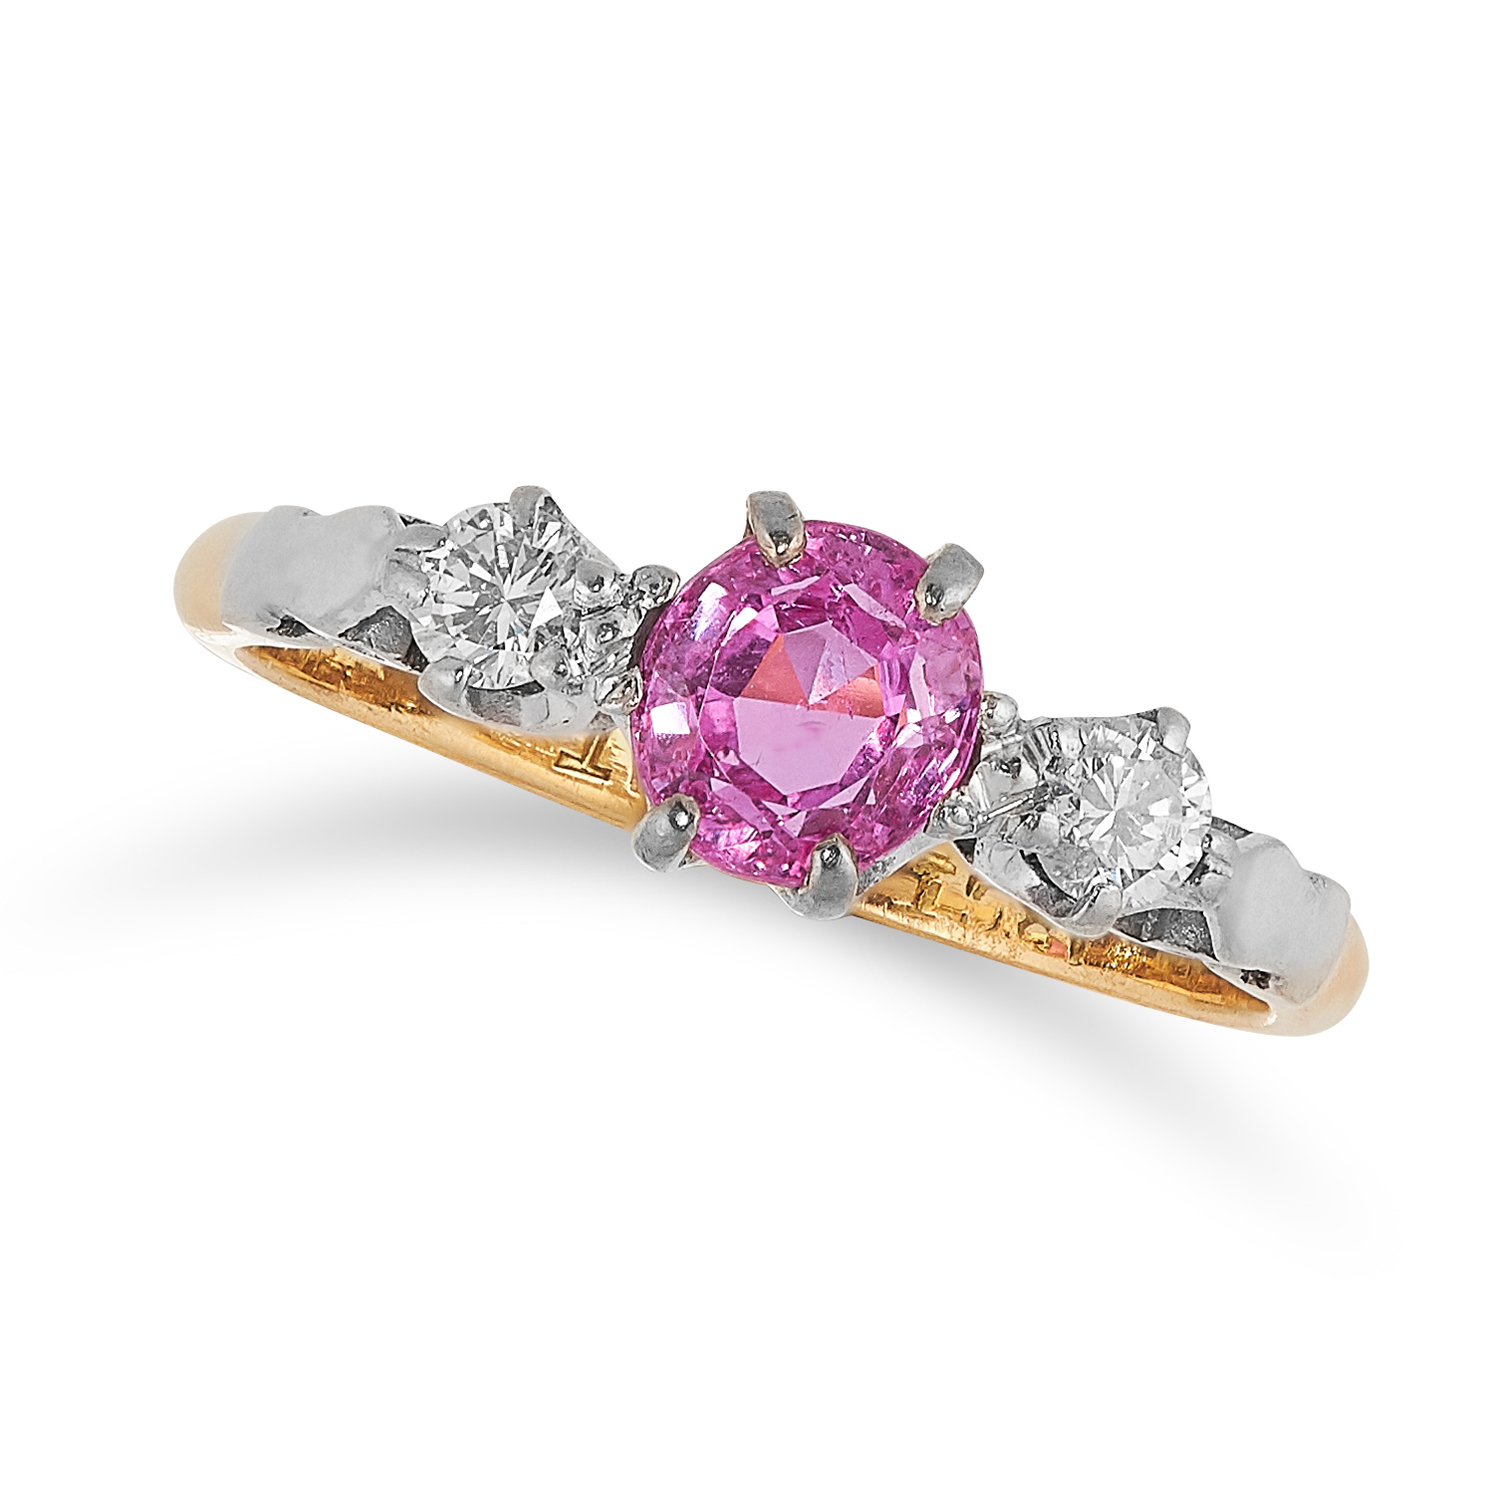 Los 8A - AN ANTIQUE UNHEATED PINK SAPPHIRE AND DIAMOND THREE STONE RING in 18ct yellow gold and platinum, the